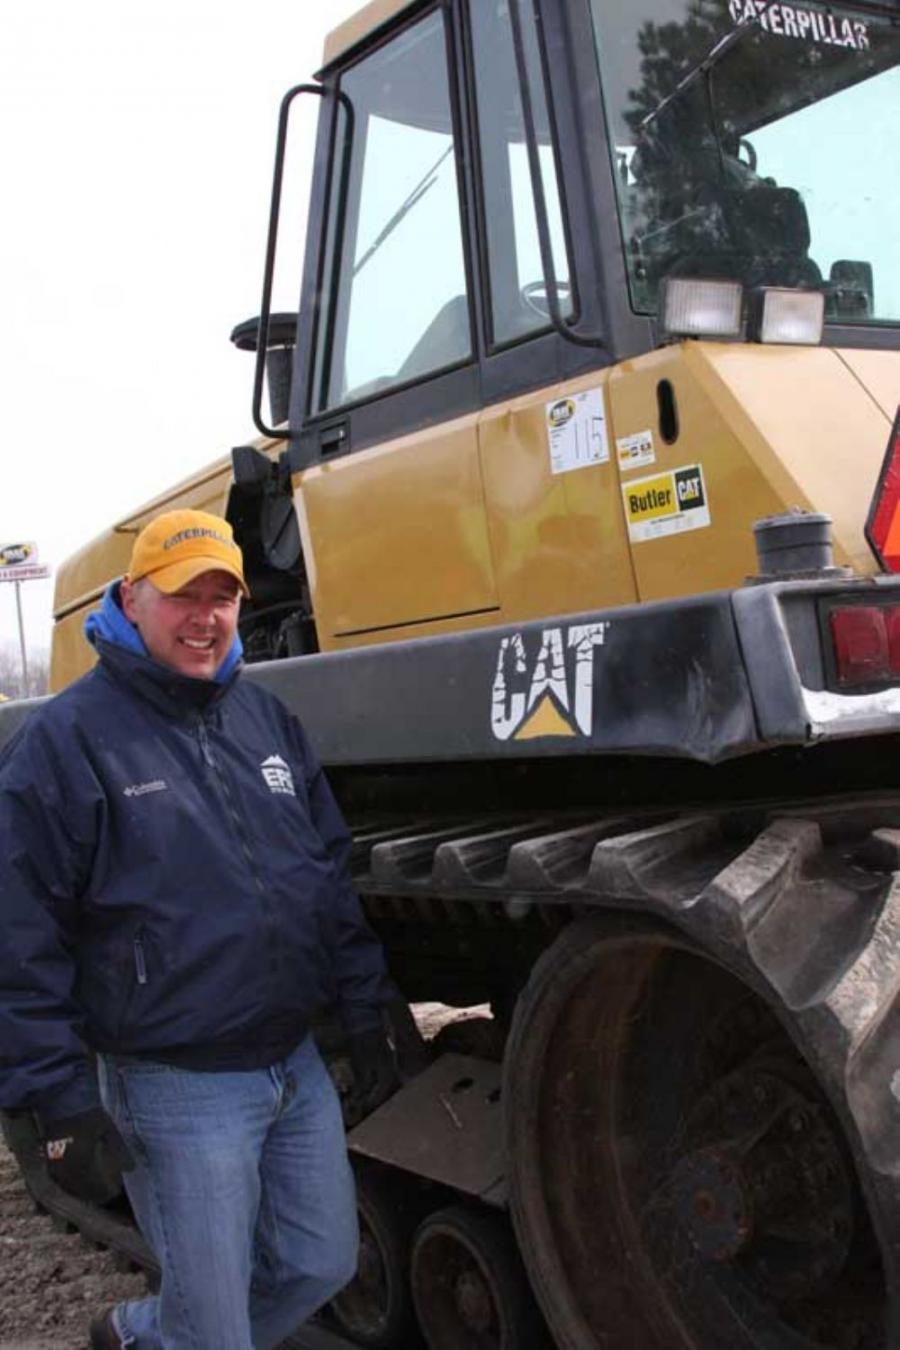 Doug Nesja of Environmental Resource Group in Steamboat Springs, Colo., is looking at this Cat Challenger 75 and several other pieces of equipment.